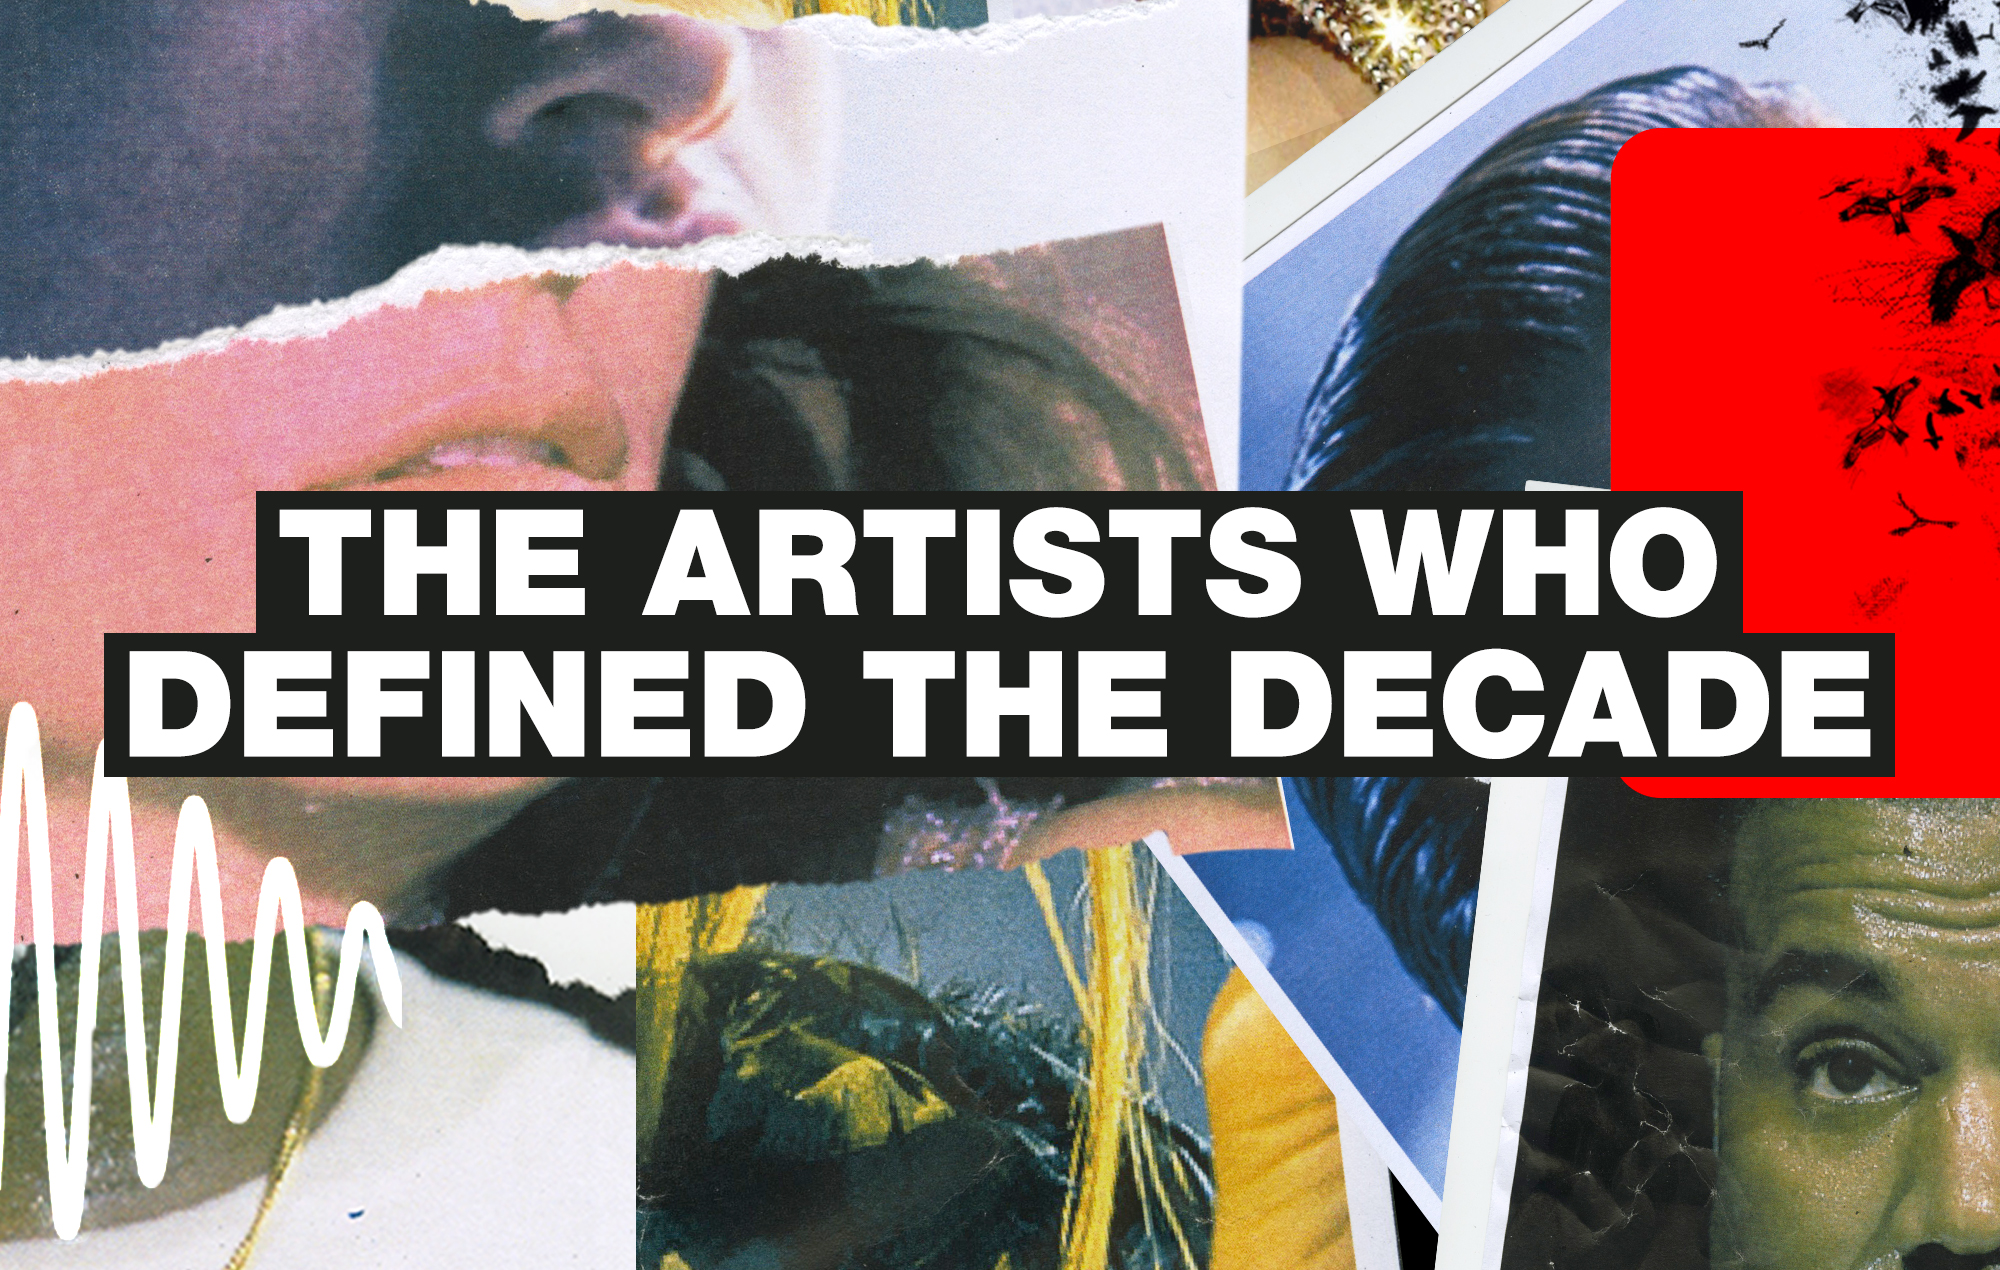 NME's 10 Artists Who Defined The Decade: The 2010s